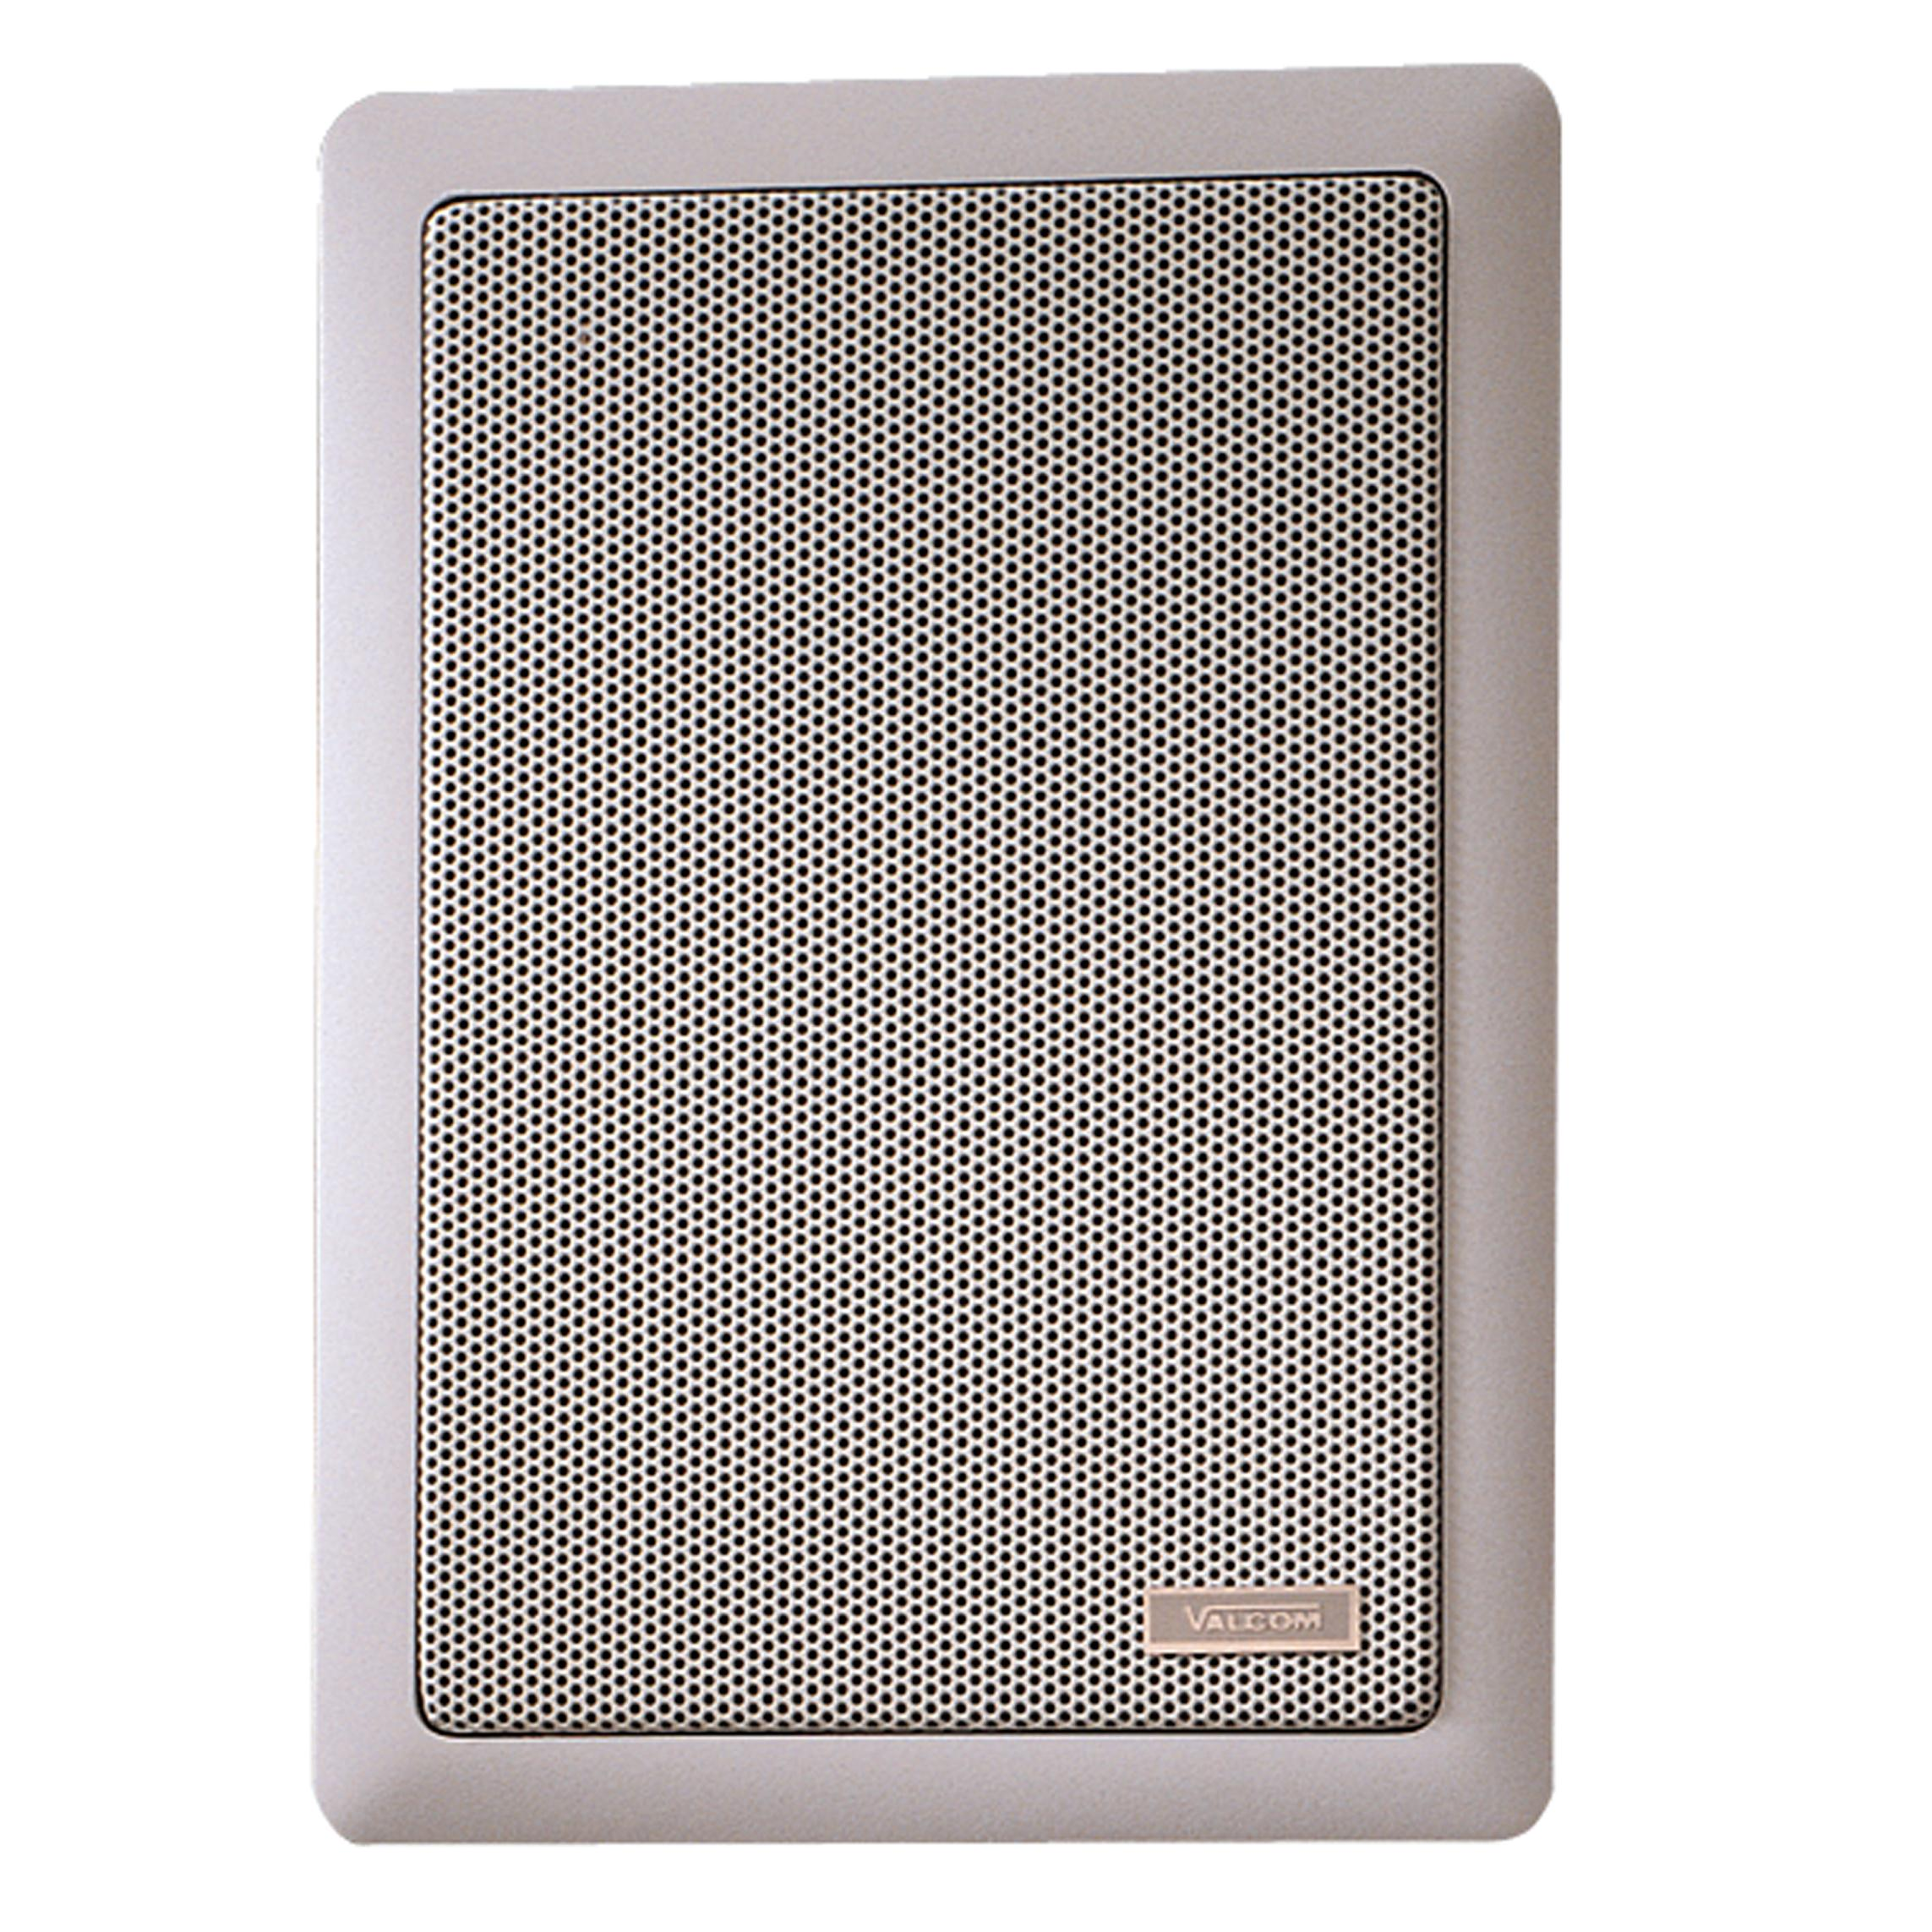 VALCOM V-1450 In-Wall Speaker